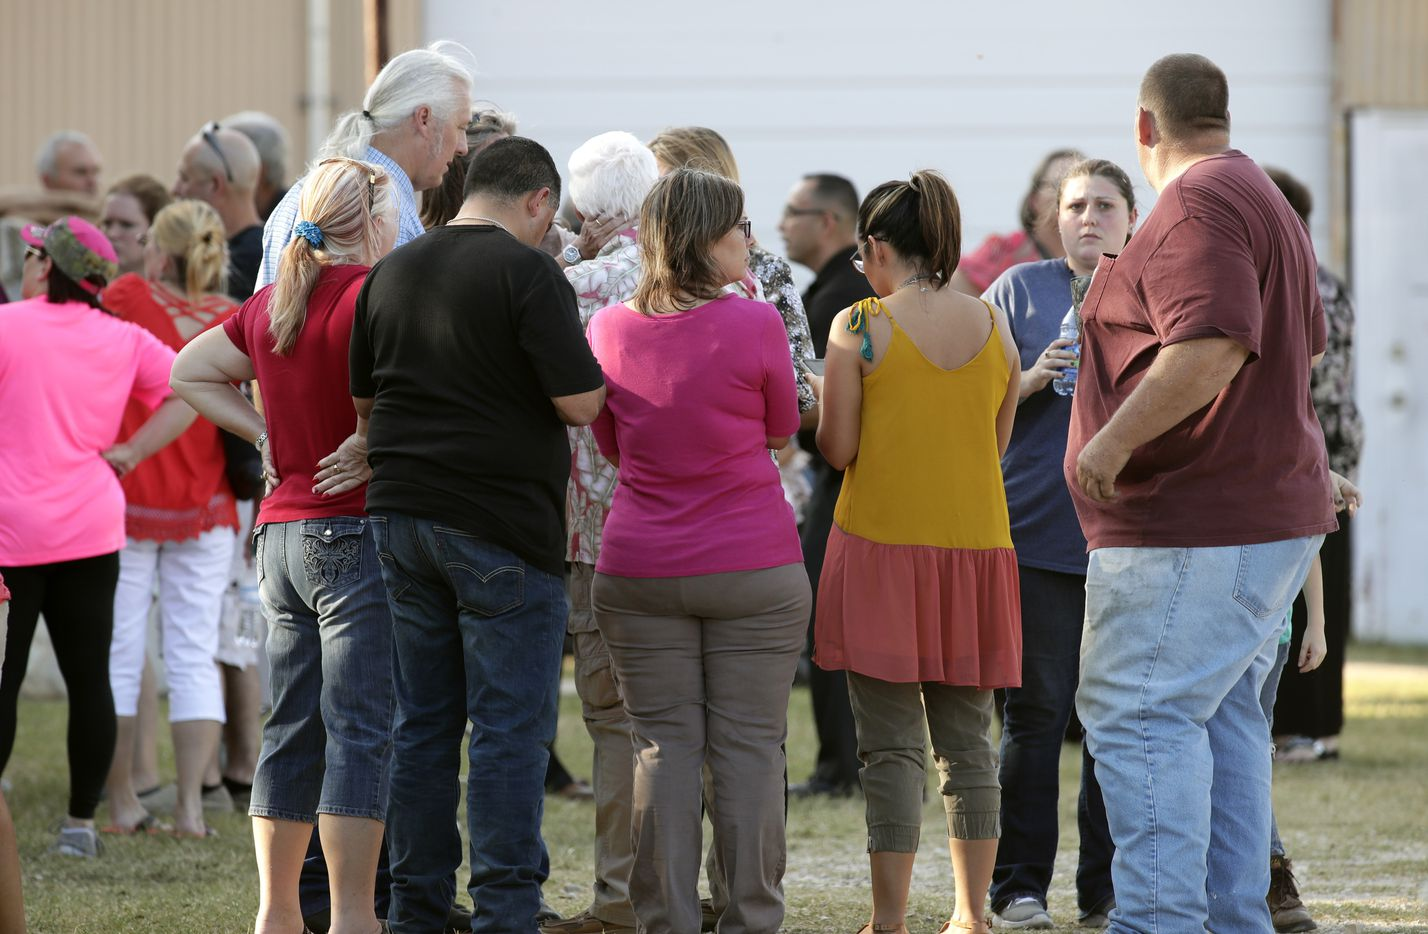 People gather near First Baptist Church following a shooting on November 5, 2017 in Sutherland Springs, Texas.